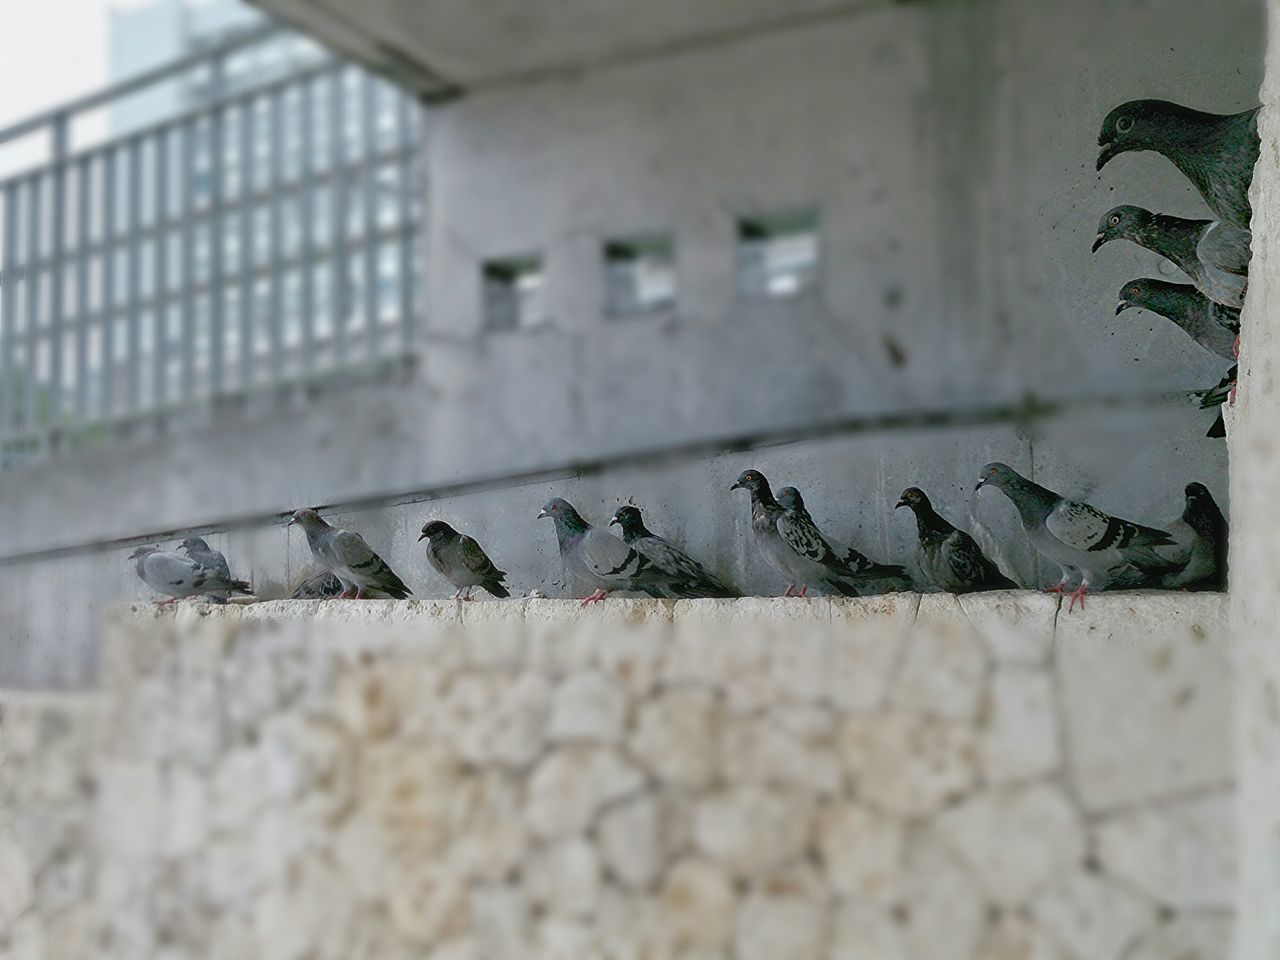 台風で鳩も避難中(^_^;) Sony Xperia Aviary Hello World Taking Photos Birds🐦⛅ Bird Photography